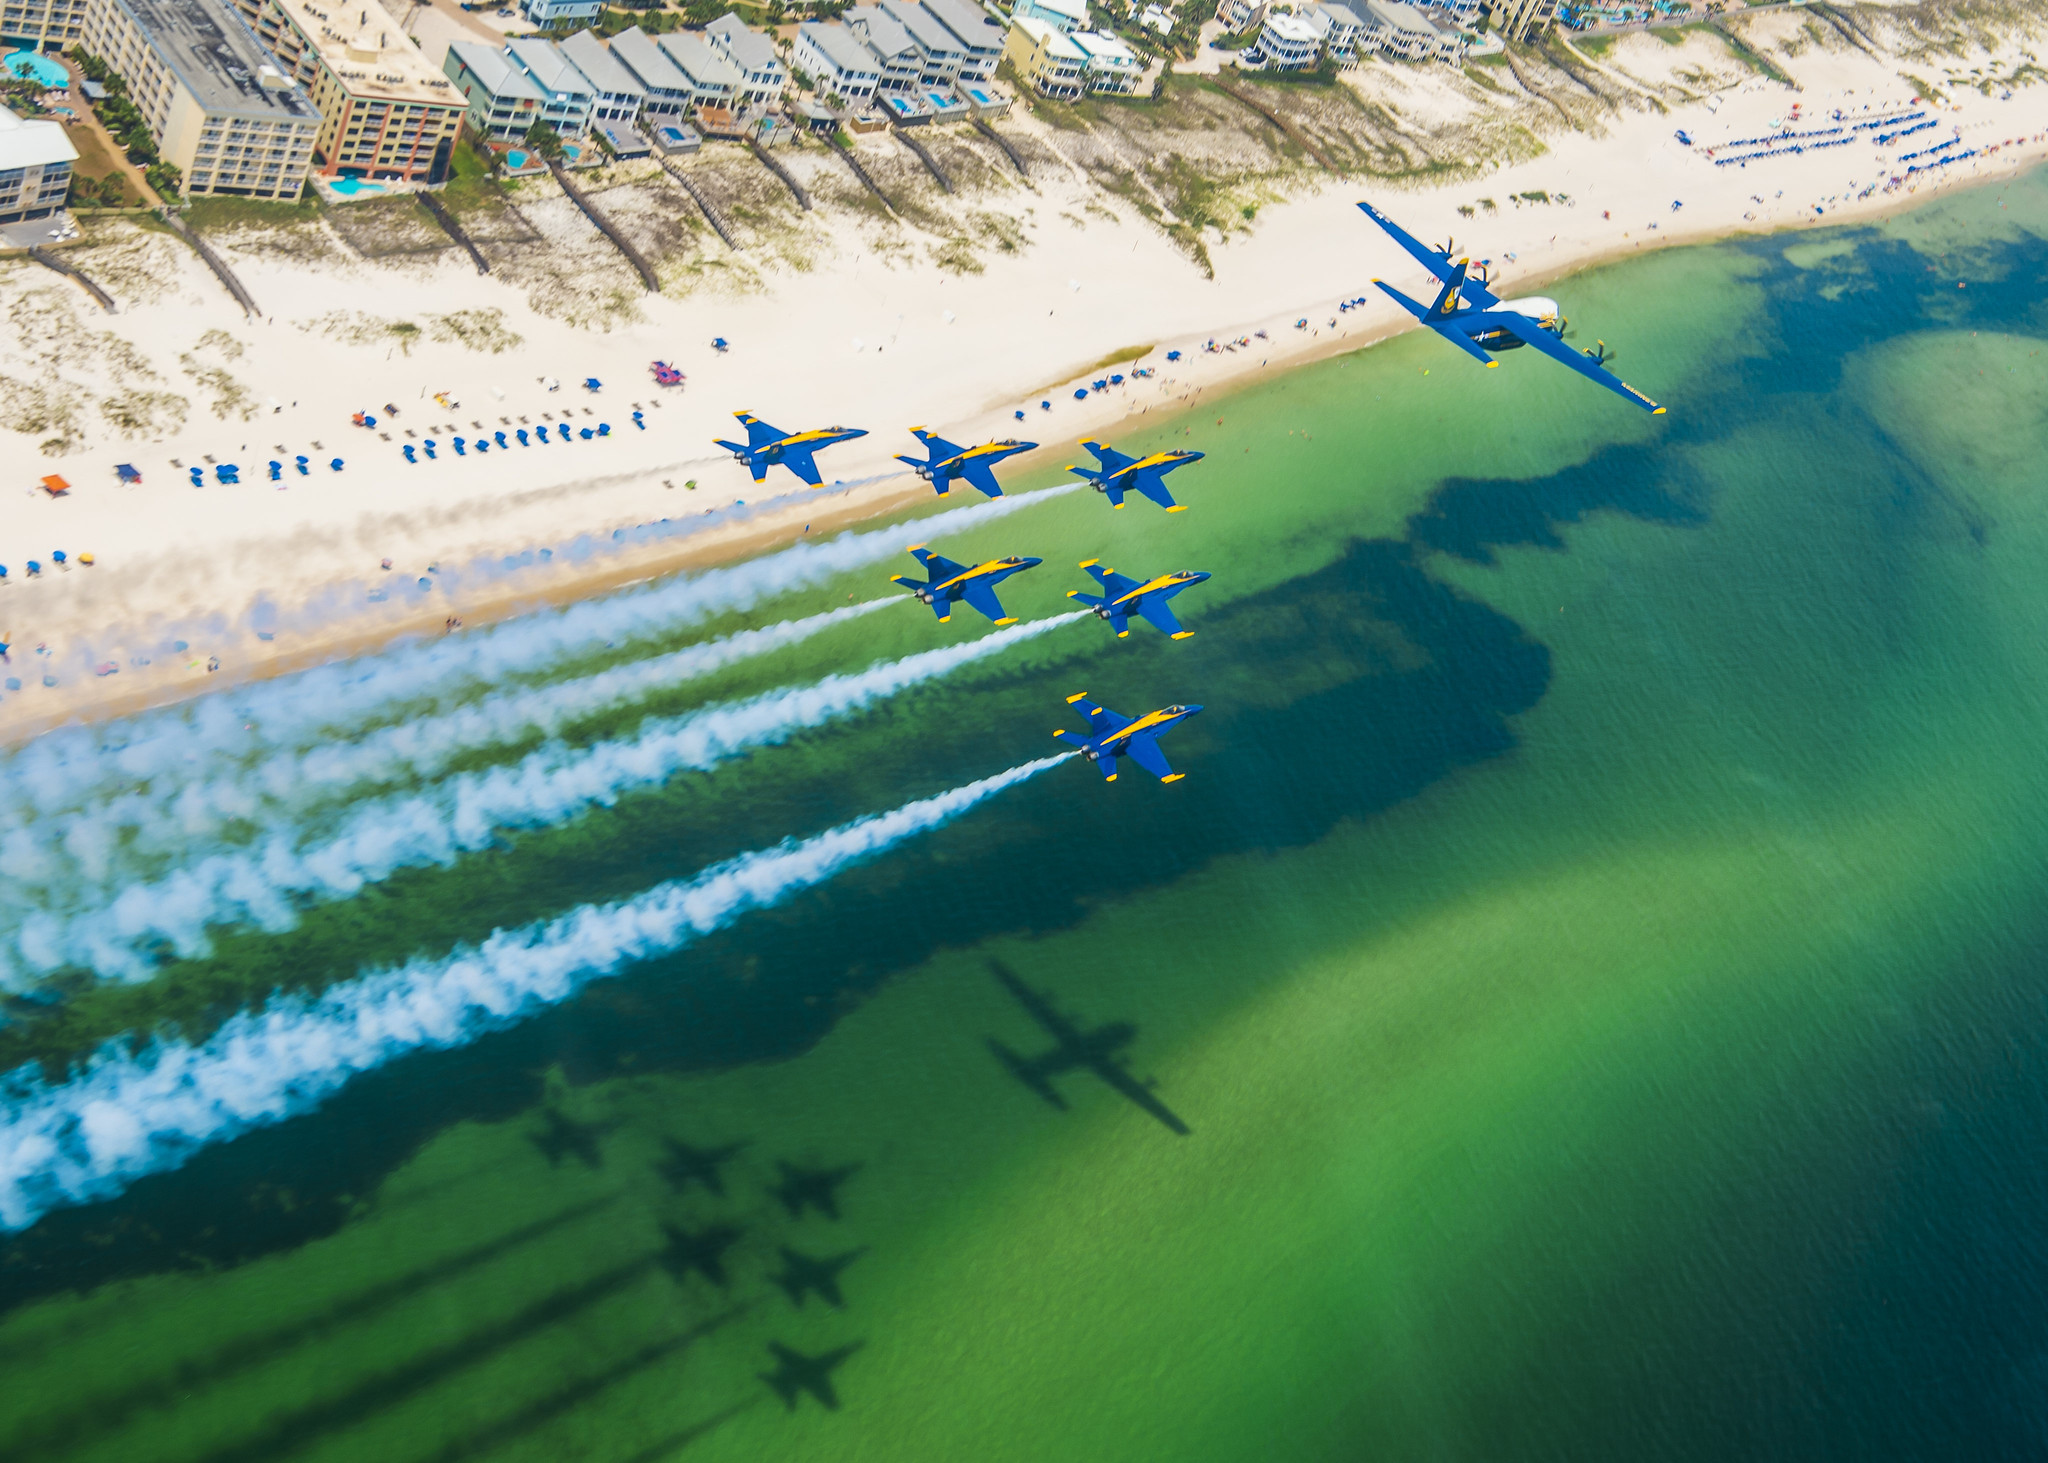 The U.S. Navy Flight Demonstration Squadron, the Blue Angels, C-130 pilots and crew arrive at Naval Air Station Pensacola with the team's new C-130J Super Hercules, alongside the Blue Angel delta formation on Aug. 17, 2020. (MC2 Cody Hendrix/Navy)